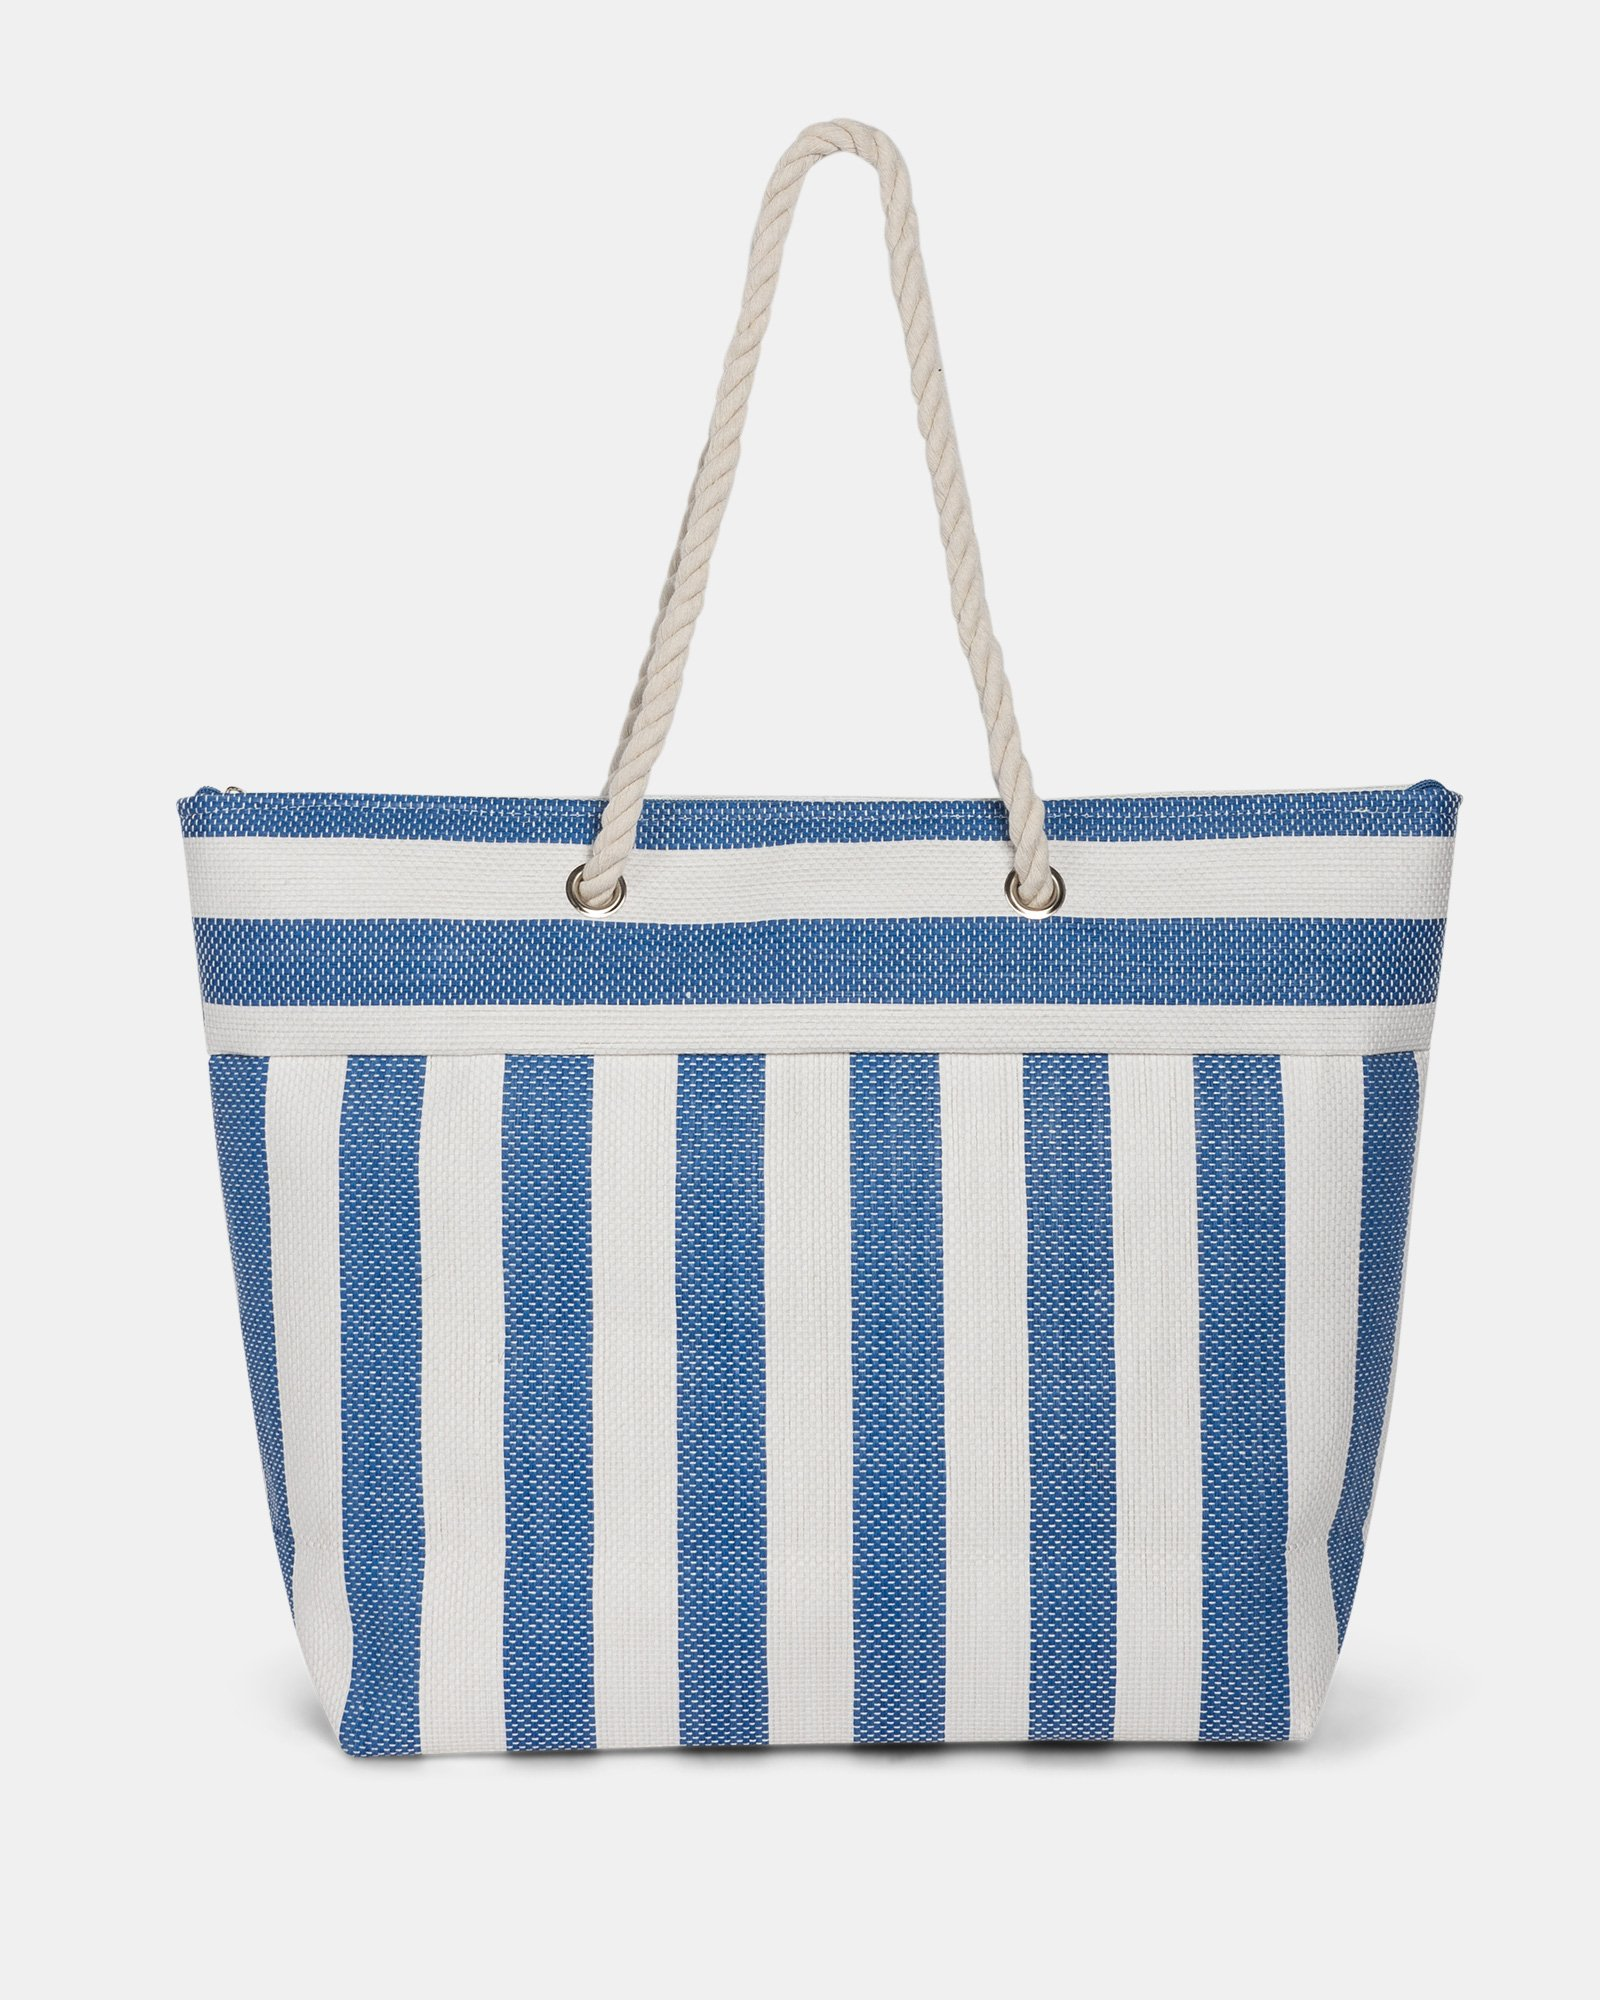 Aloha - Straw Tote Bag with Main zippered compartment - Navy combo - Joanel - Zoom